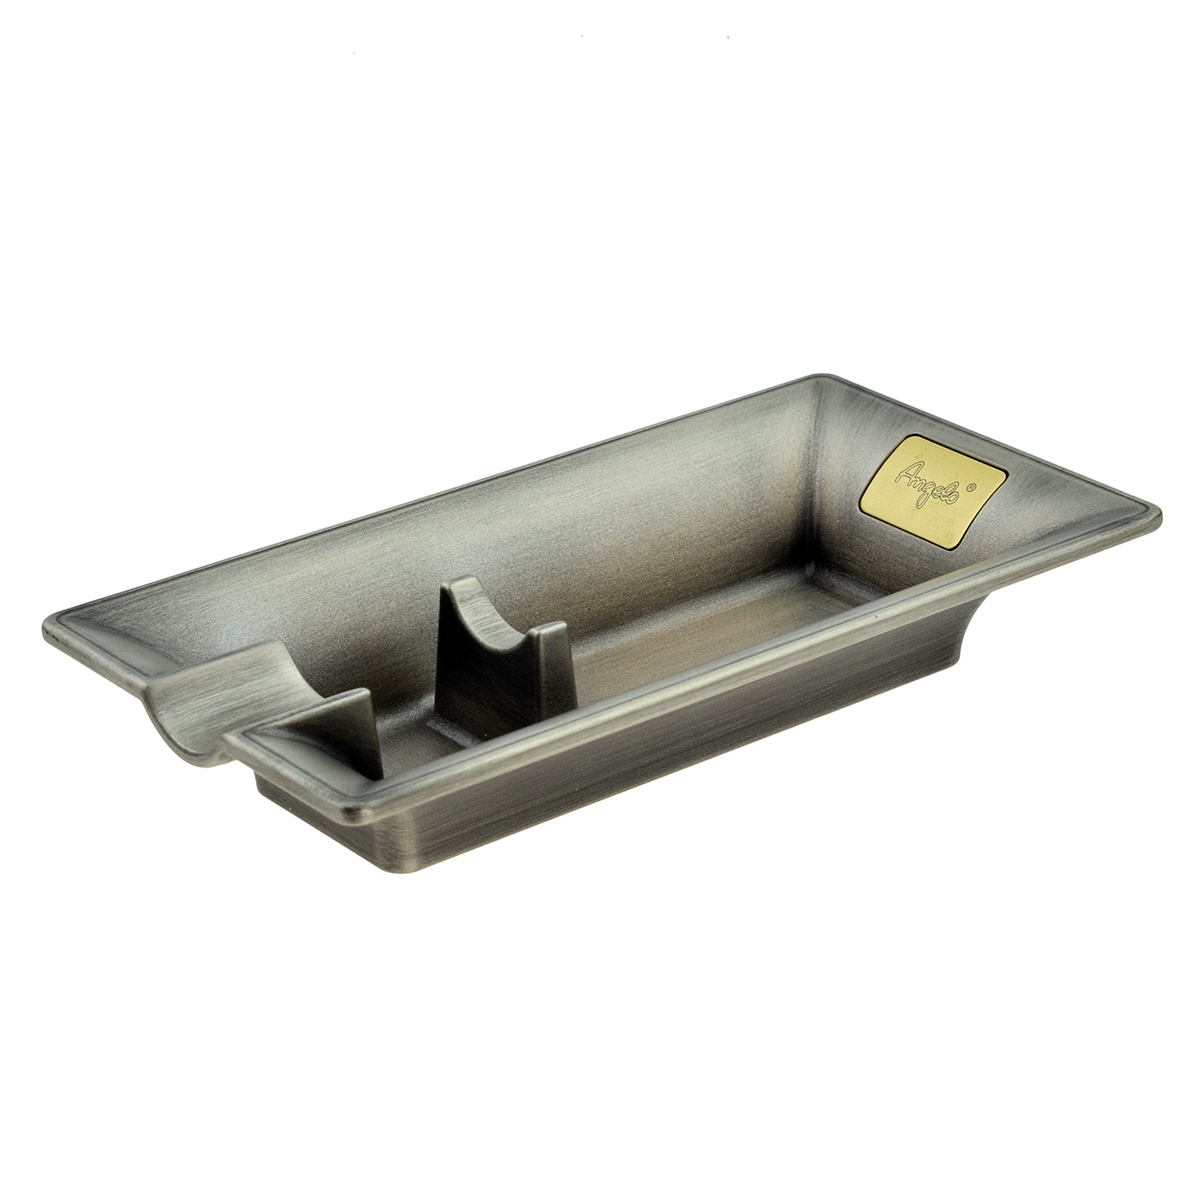 Cigar Ashtray Single Position Cast Metal Pewter Finish Approx 16 x 8.5cm Boxed 1